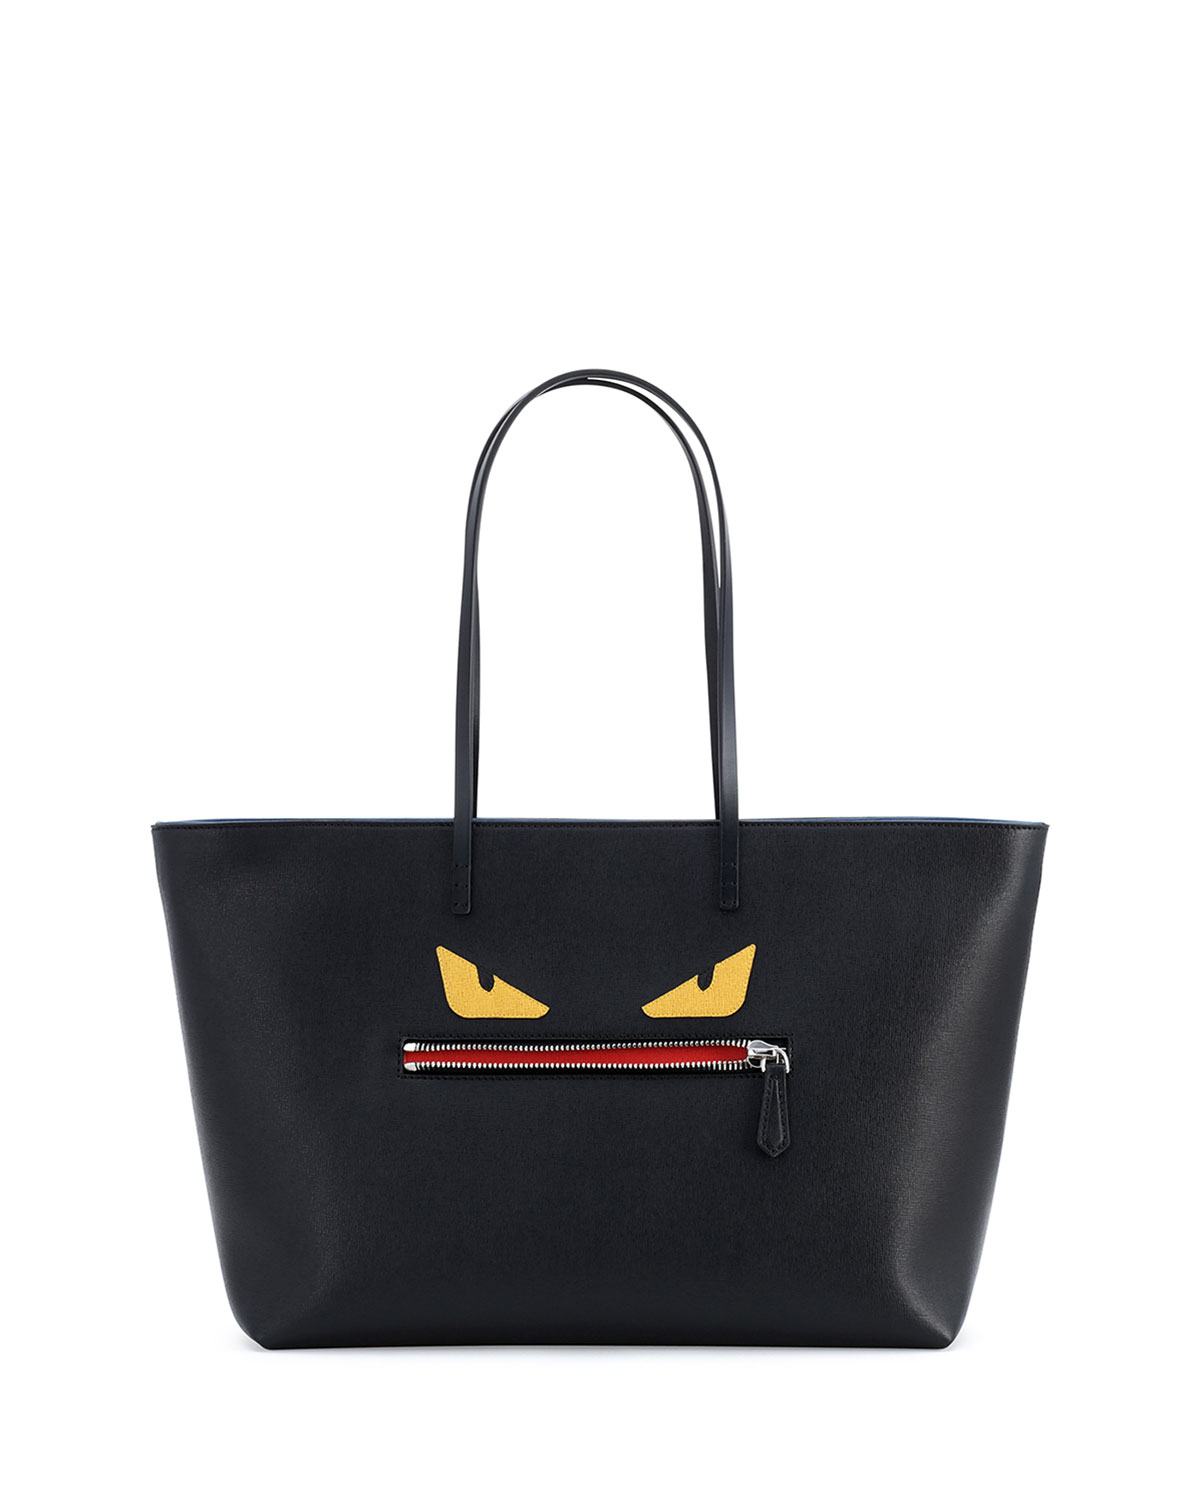 4f4653cd2985 Fendi Monster Tote Bag